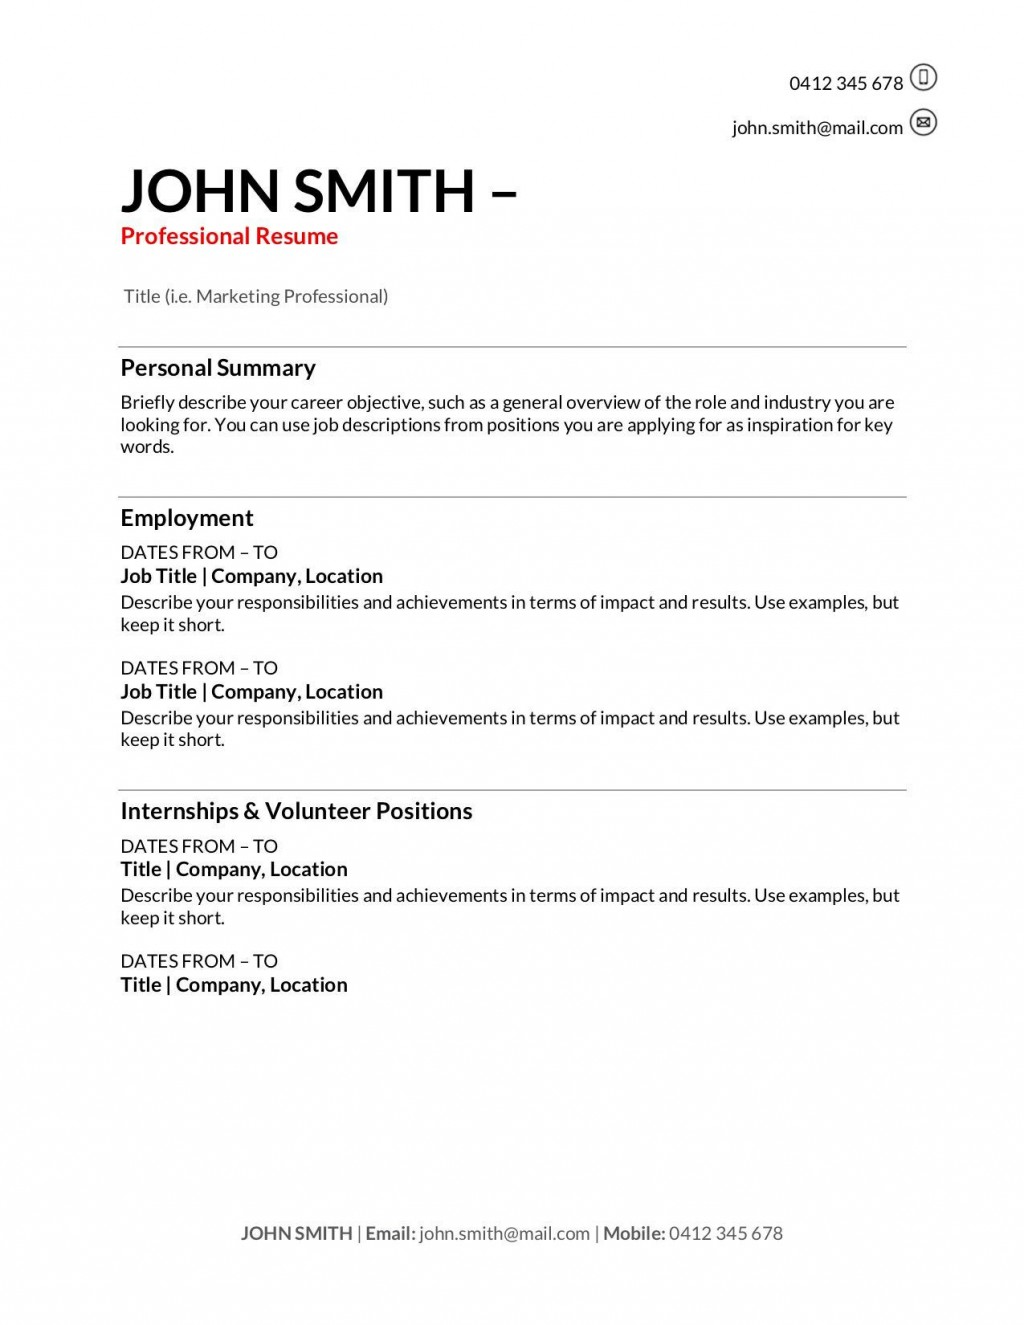 006 Impressive Resume Template For First Job High Def  Student Australia After Time JobseekerLarge